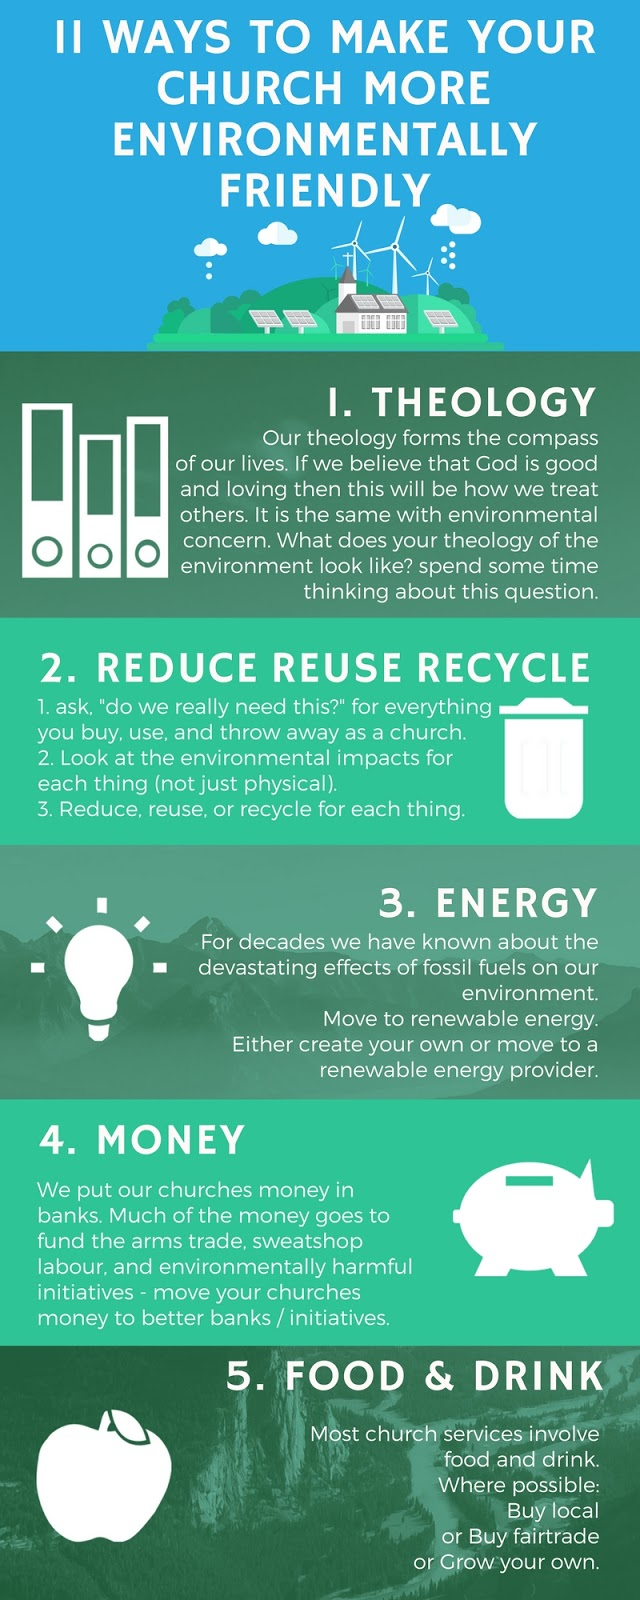 11 Ways To Make Your Church More Environmentally Friendly infographic Part 1